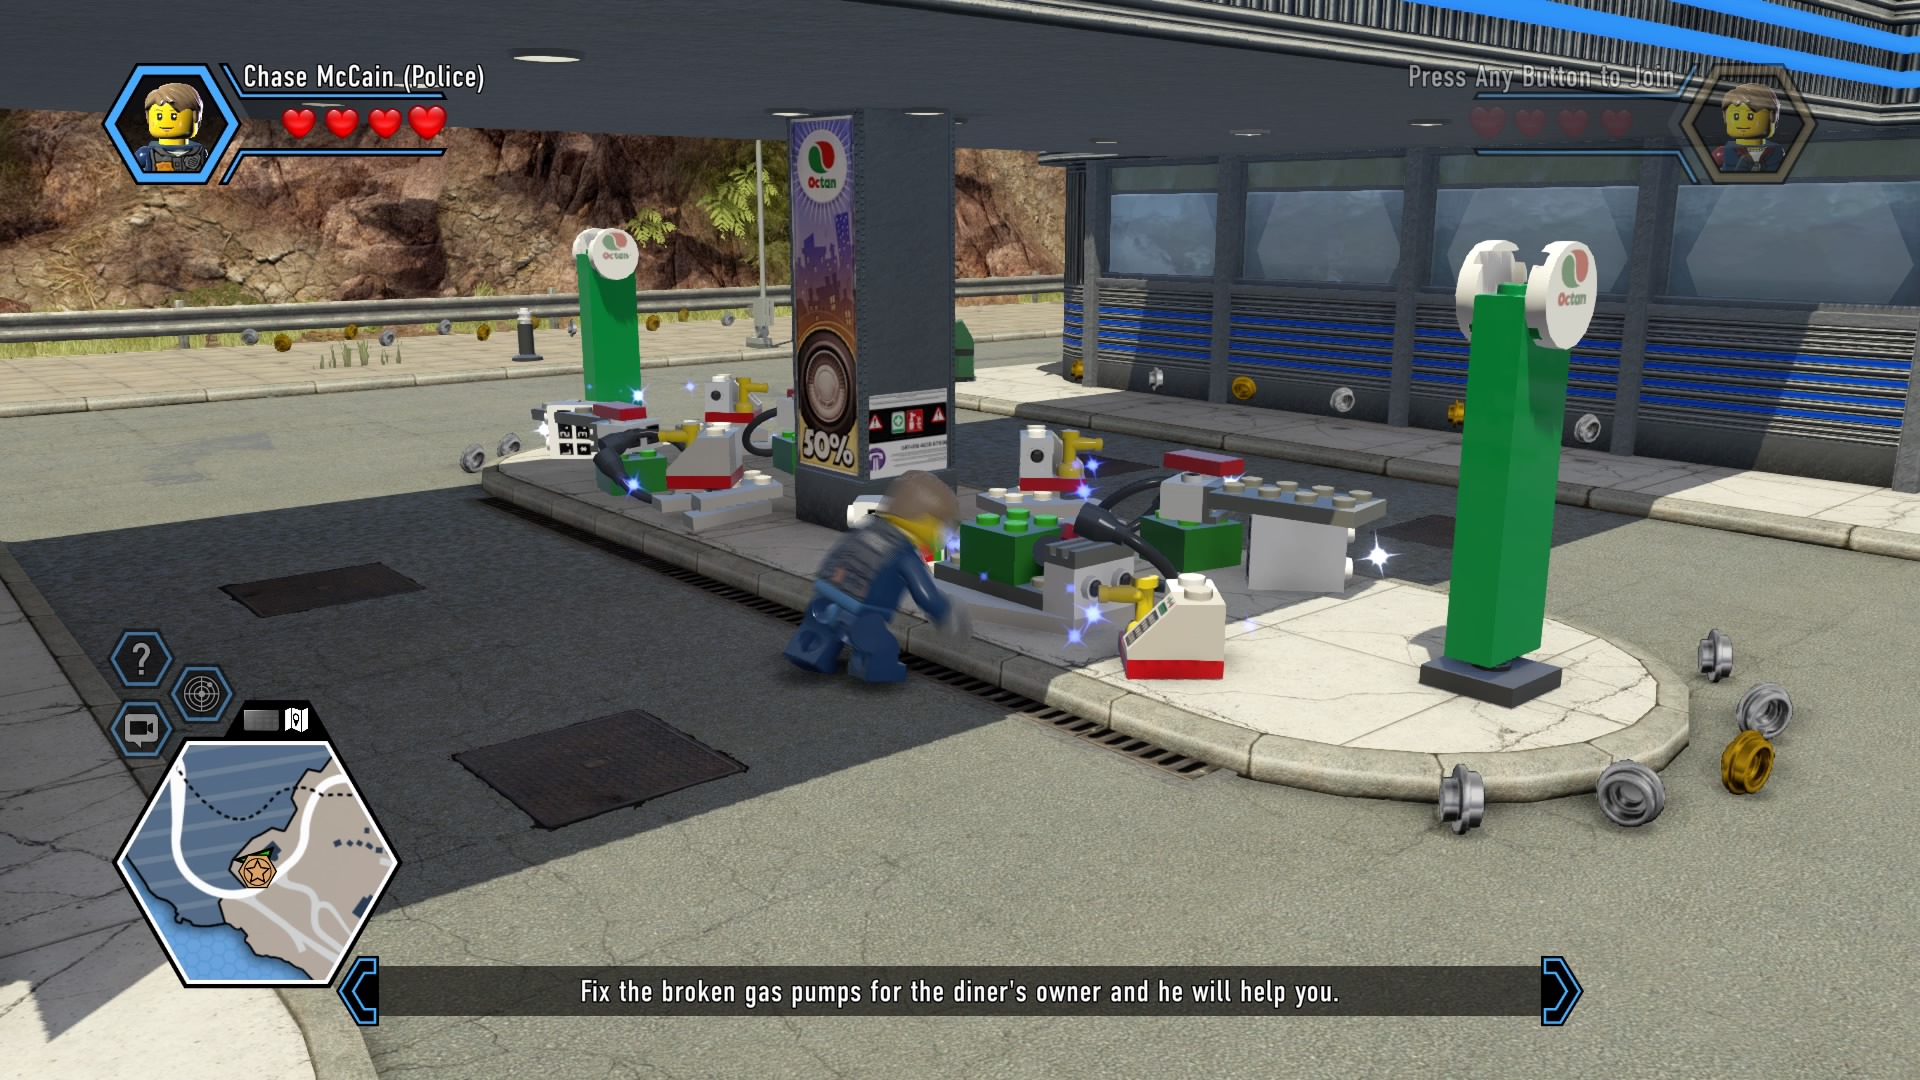 Lego City Undercover Complete Walkthrough Chapter 2 Guide Walkthroughs The Escapist